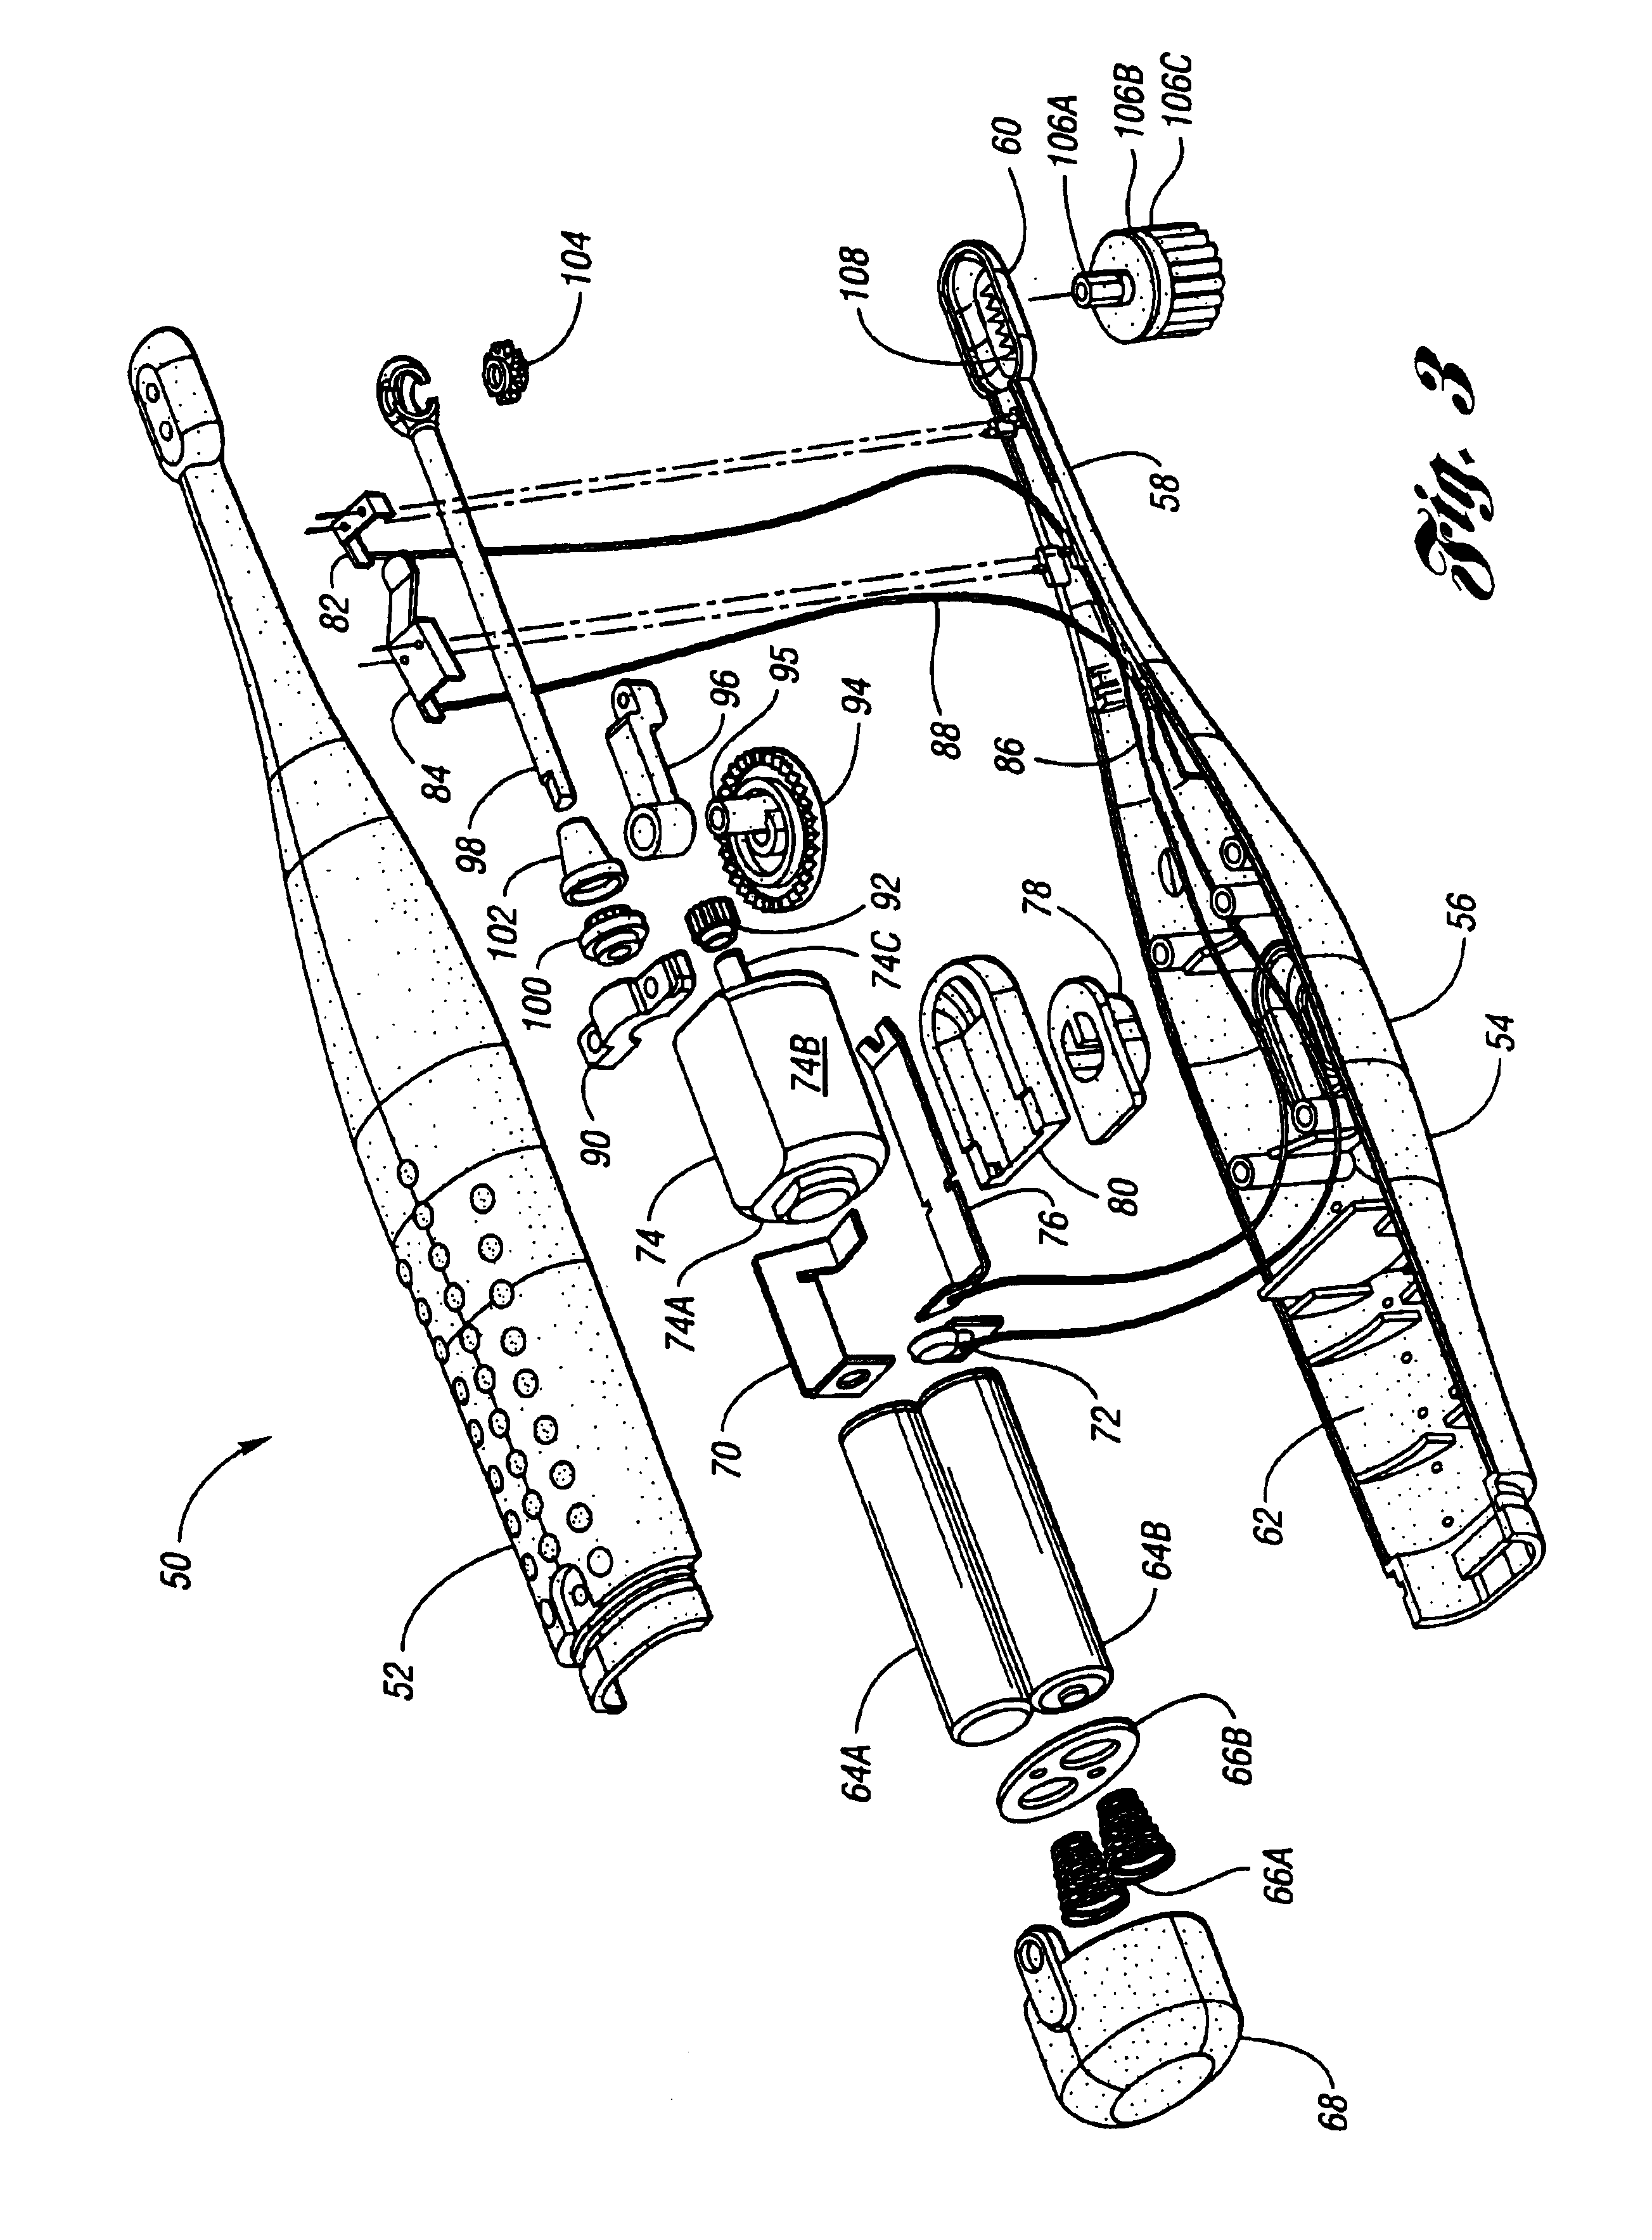 Patent Us6792640 Automatic Electric Toothbrush Google